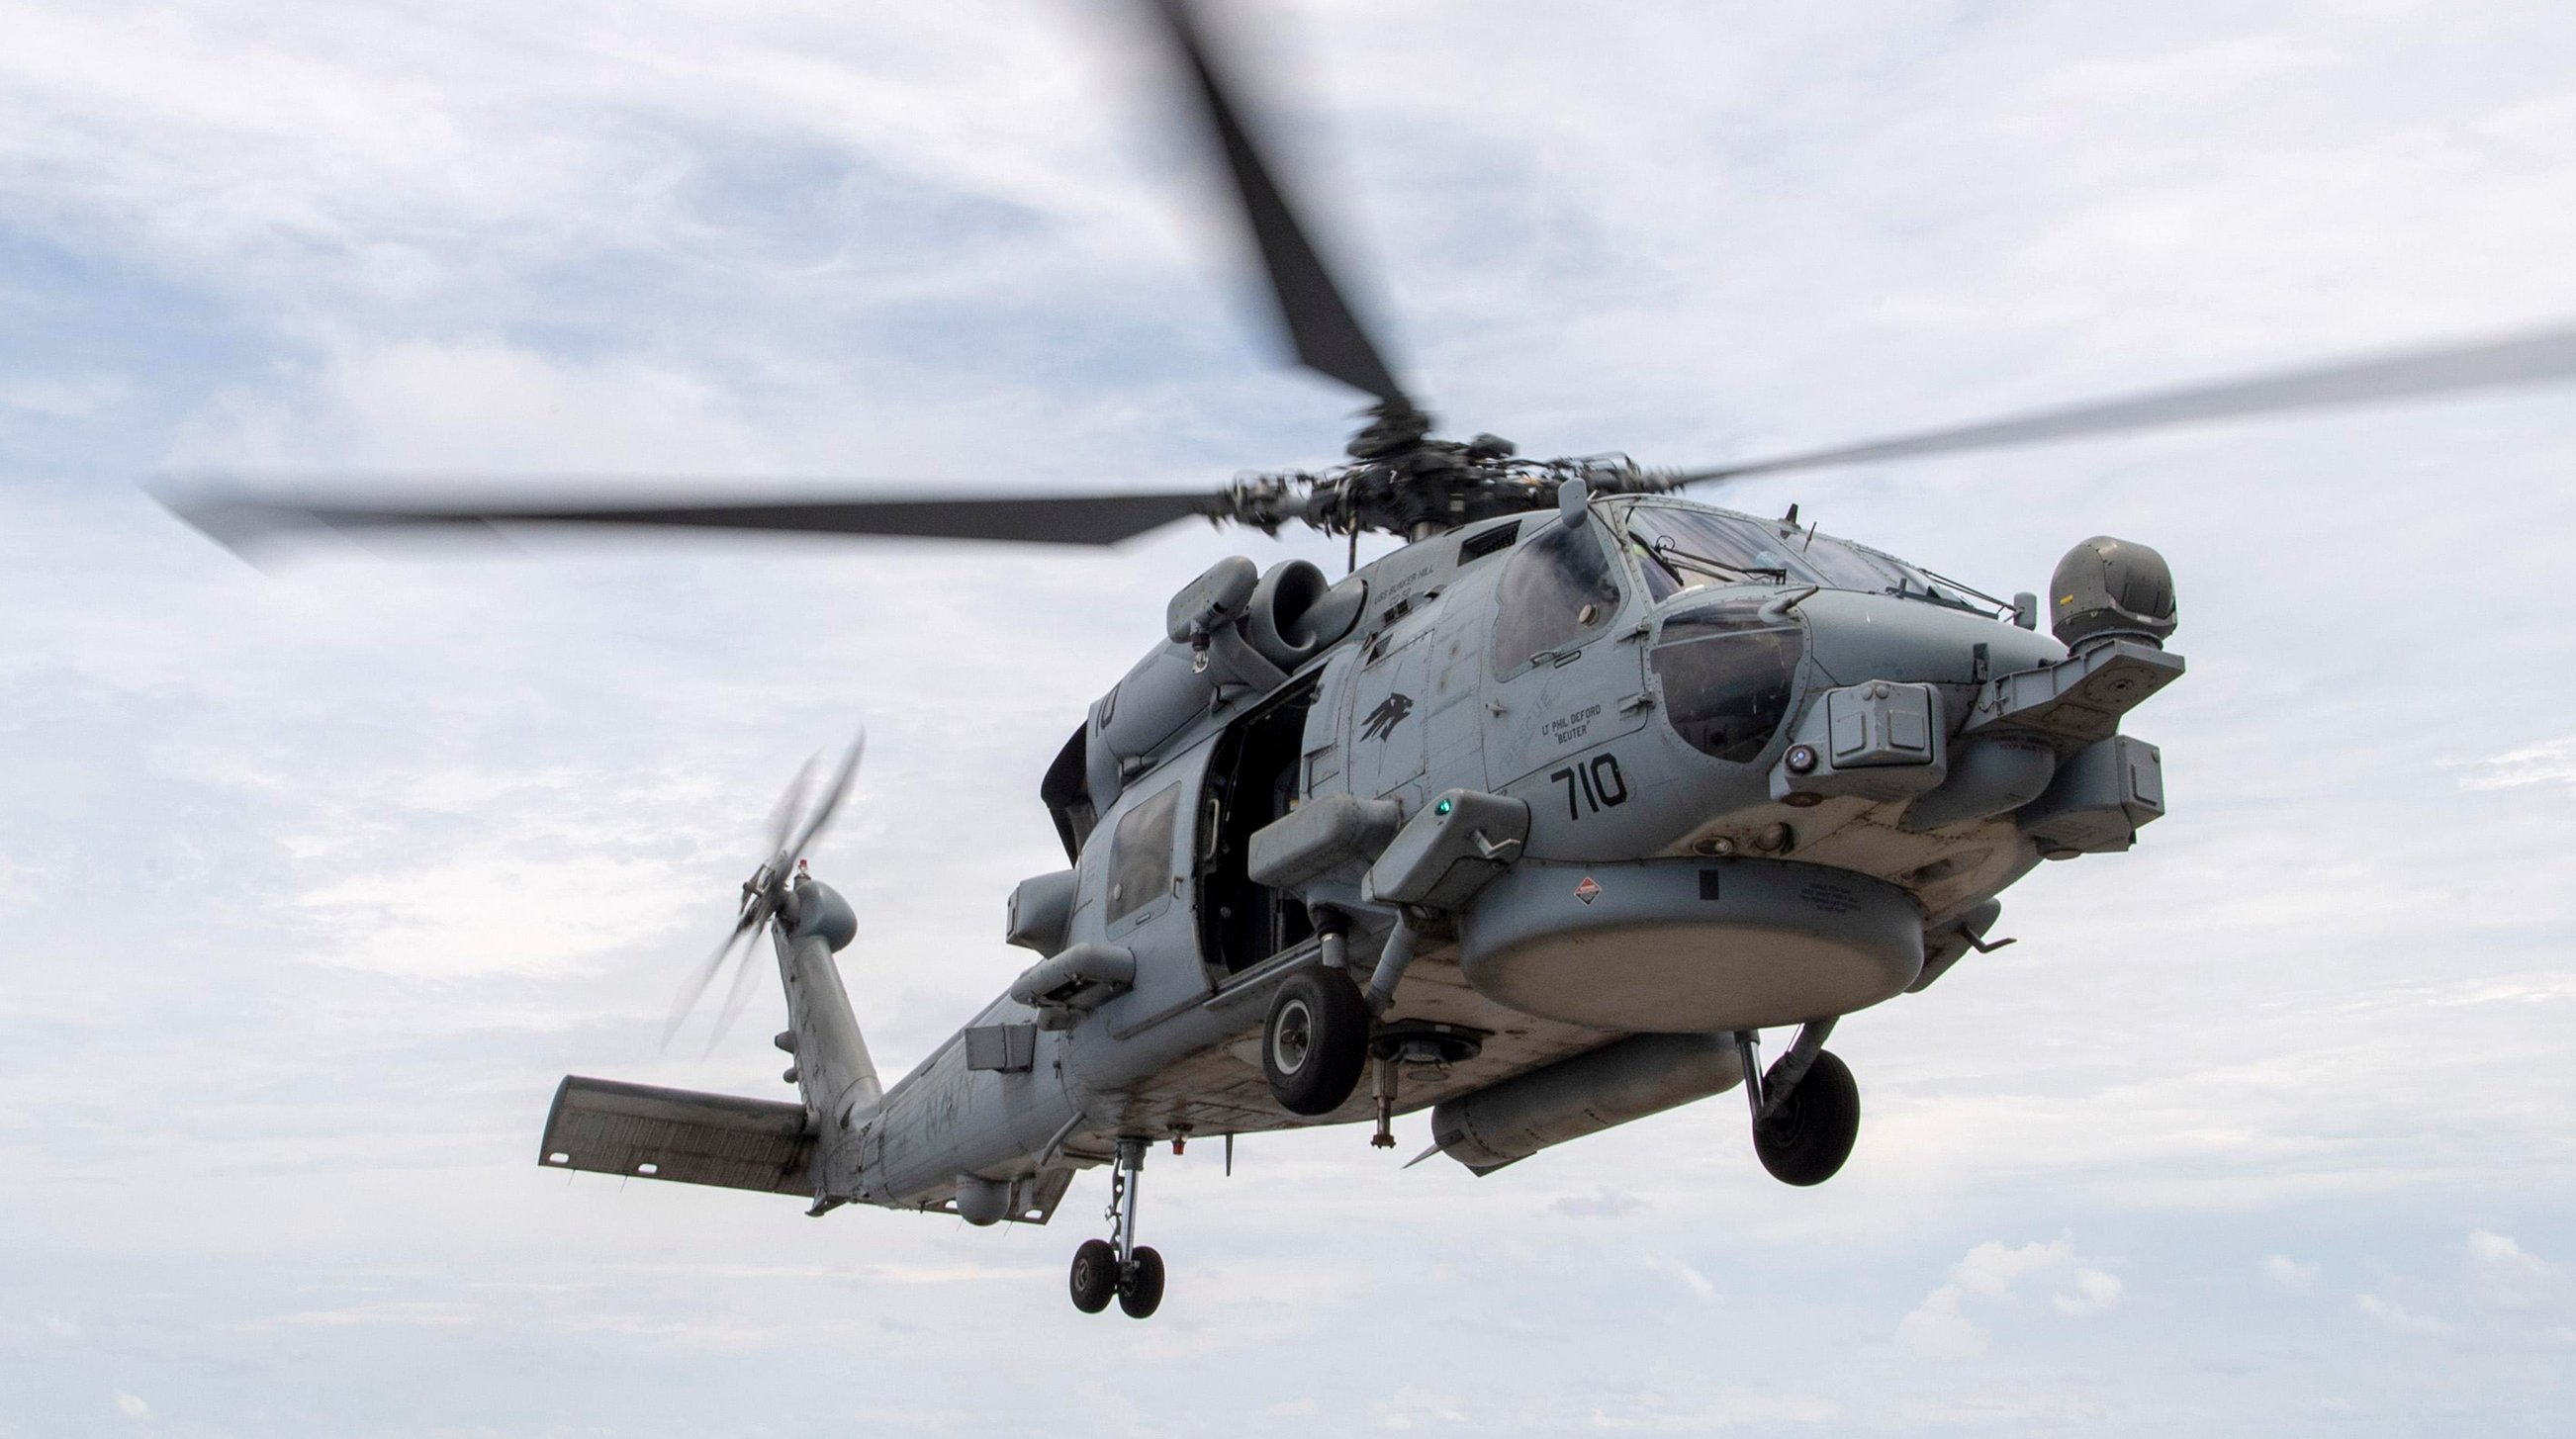 MH-60R [US Navy/Mass Communication Specialist 2nd Class Brandie Nuzzi]